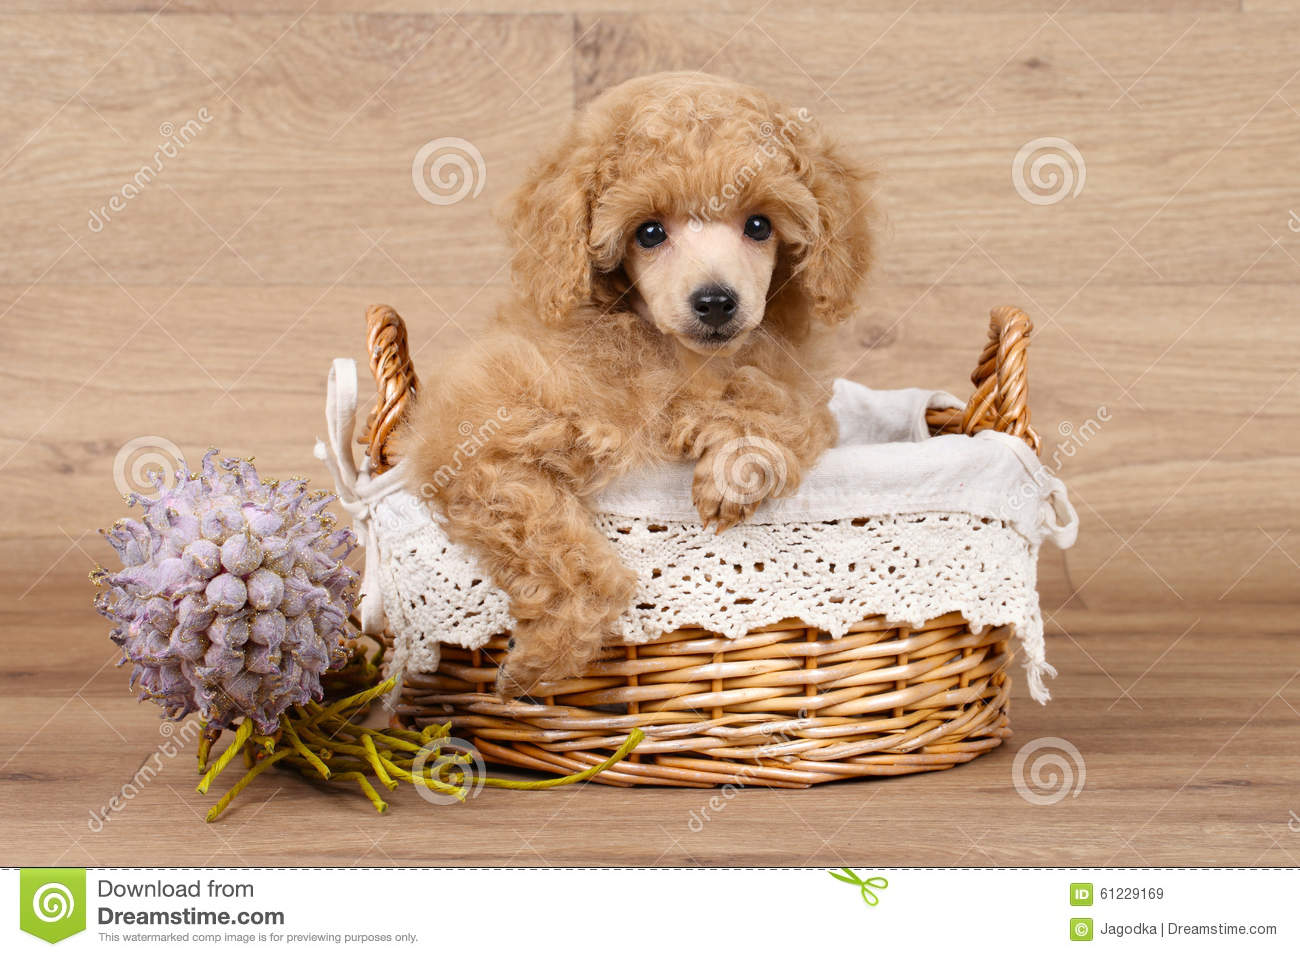 Poodle puppy in basket